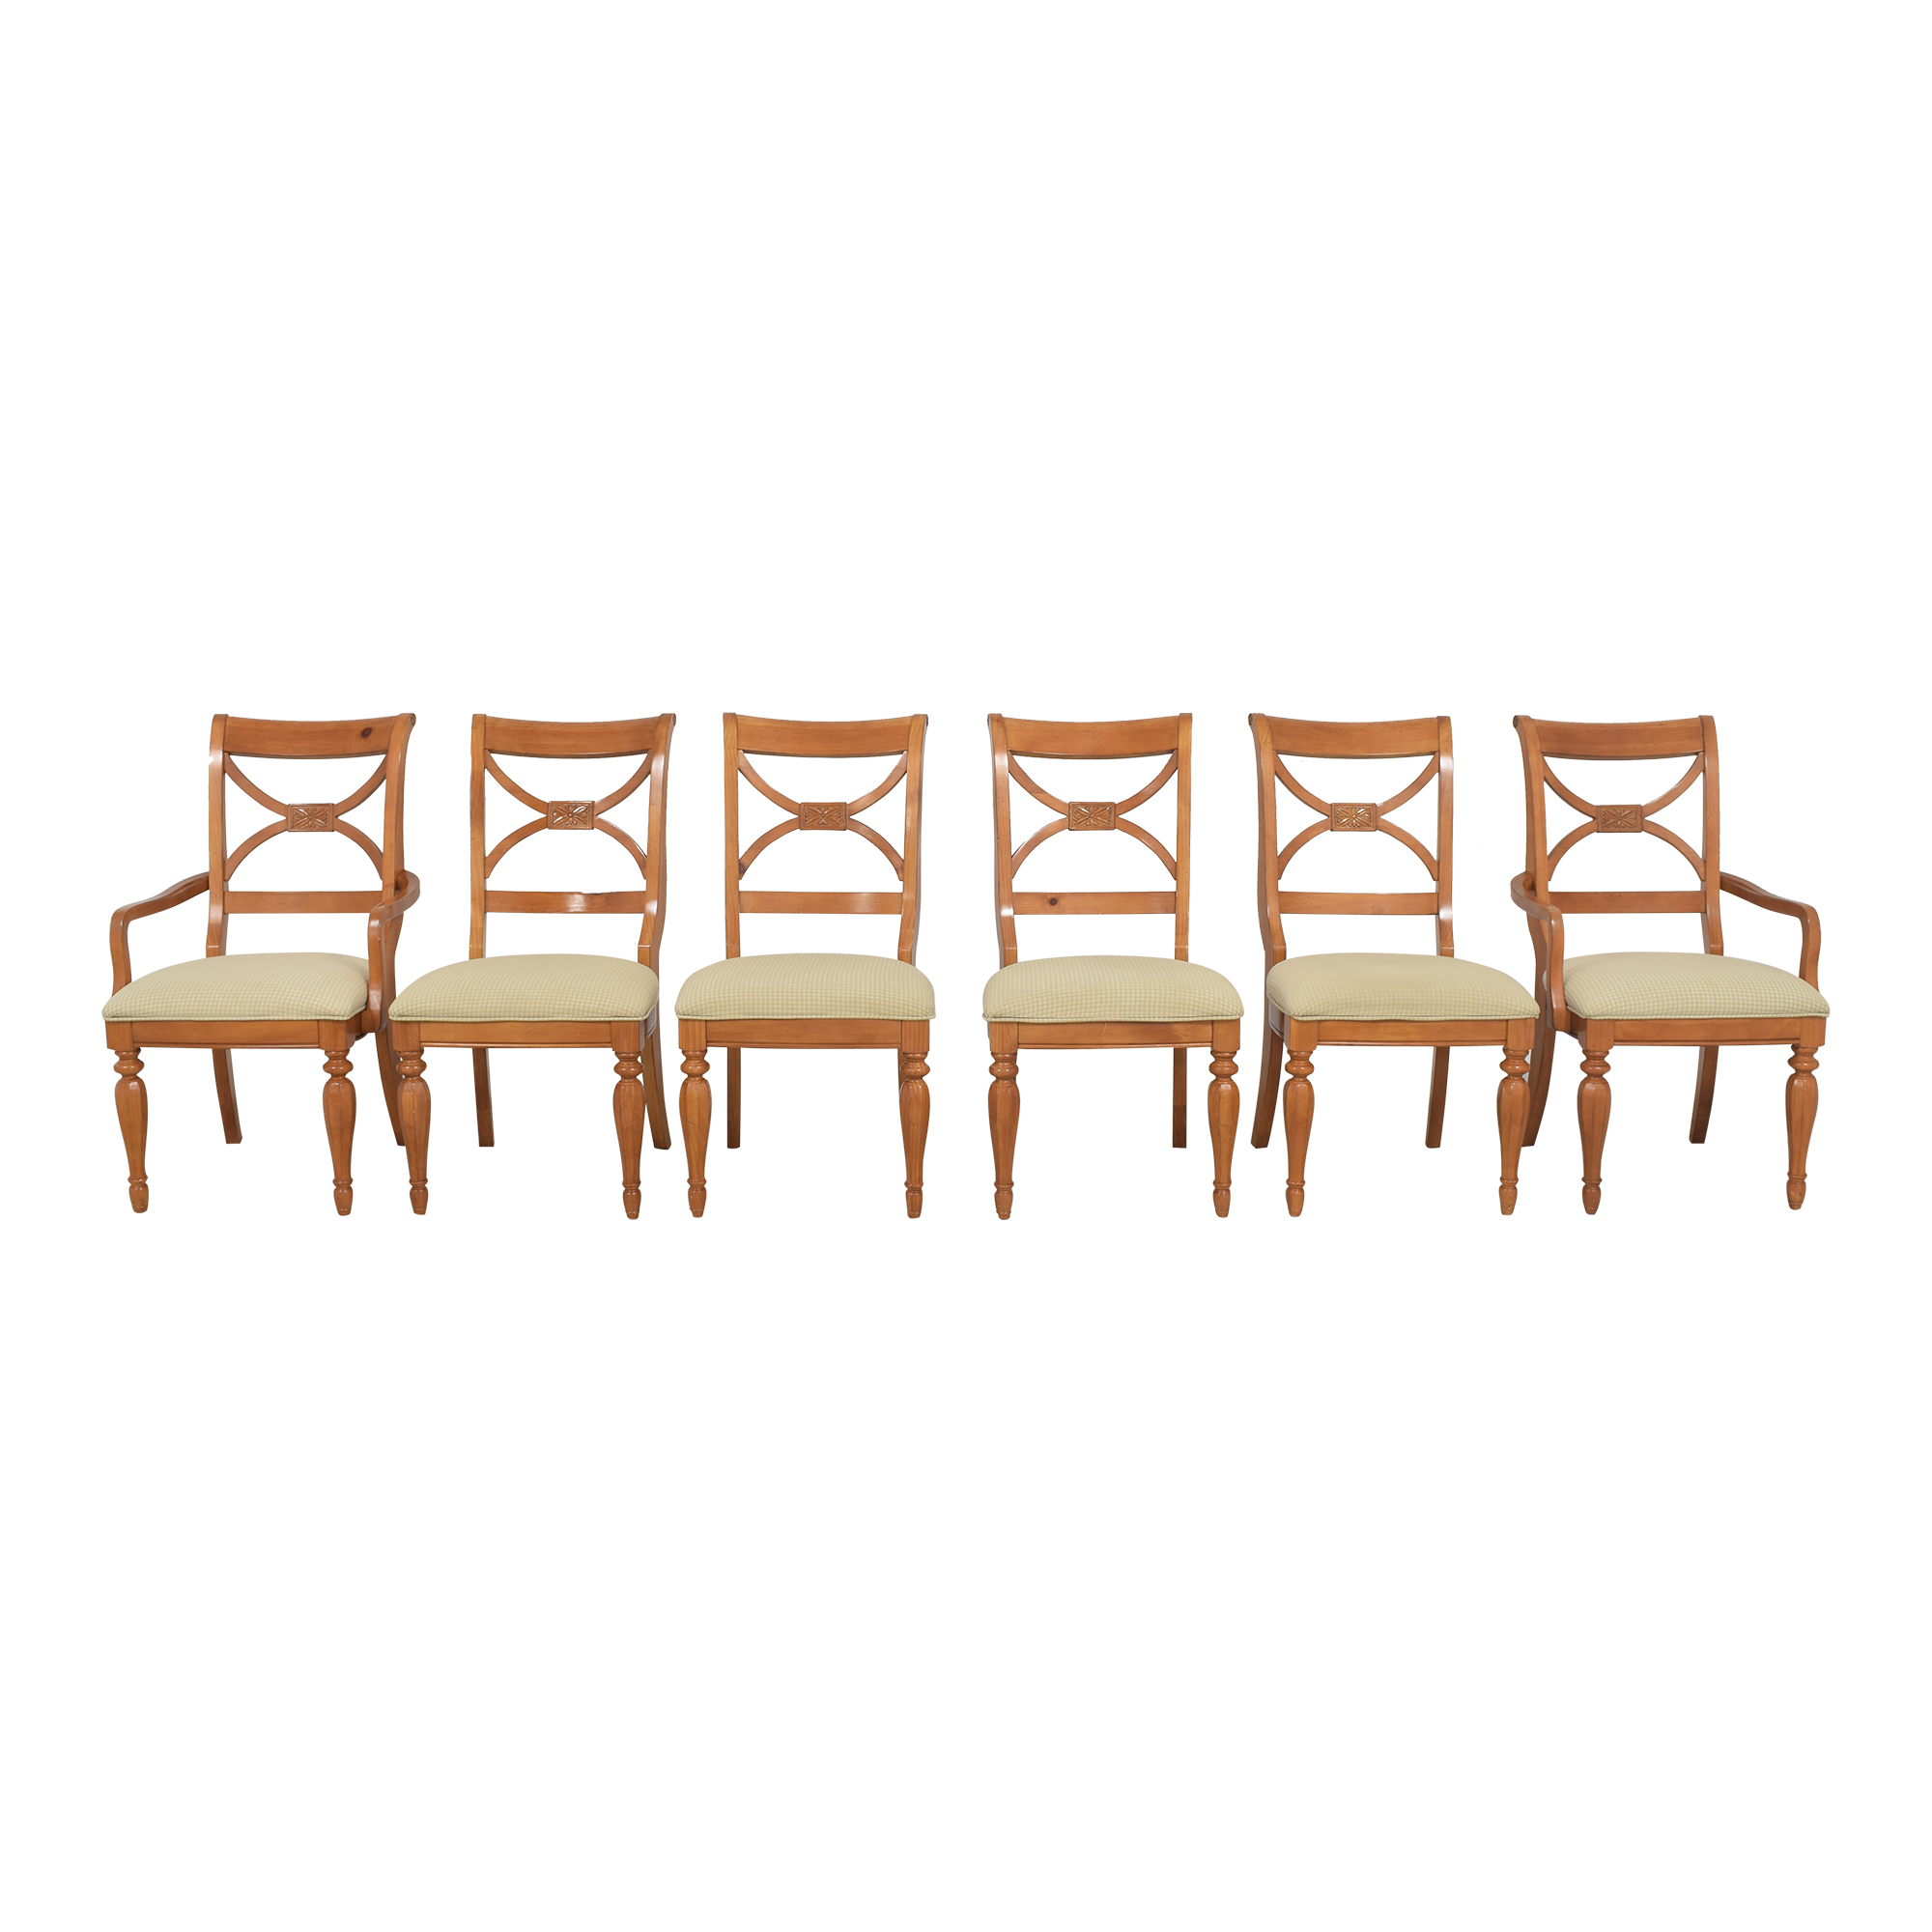 Legacy Classic Furniture Legacy Classic Furniture Dining Chairs nyc